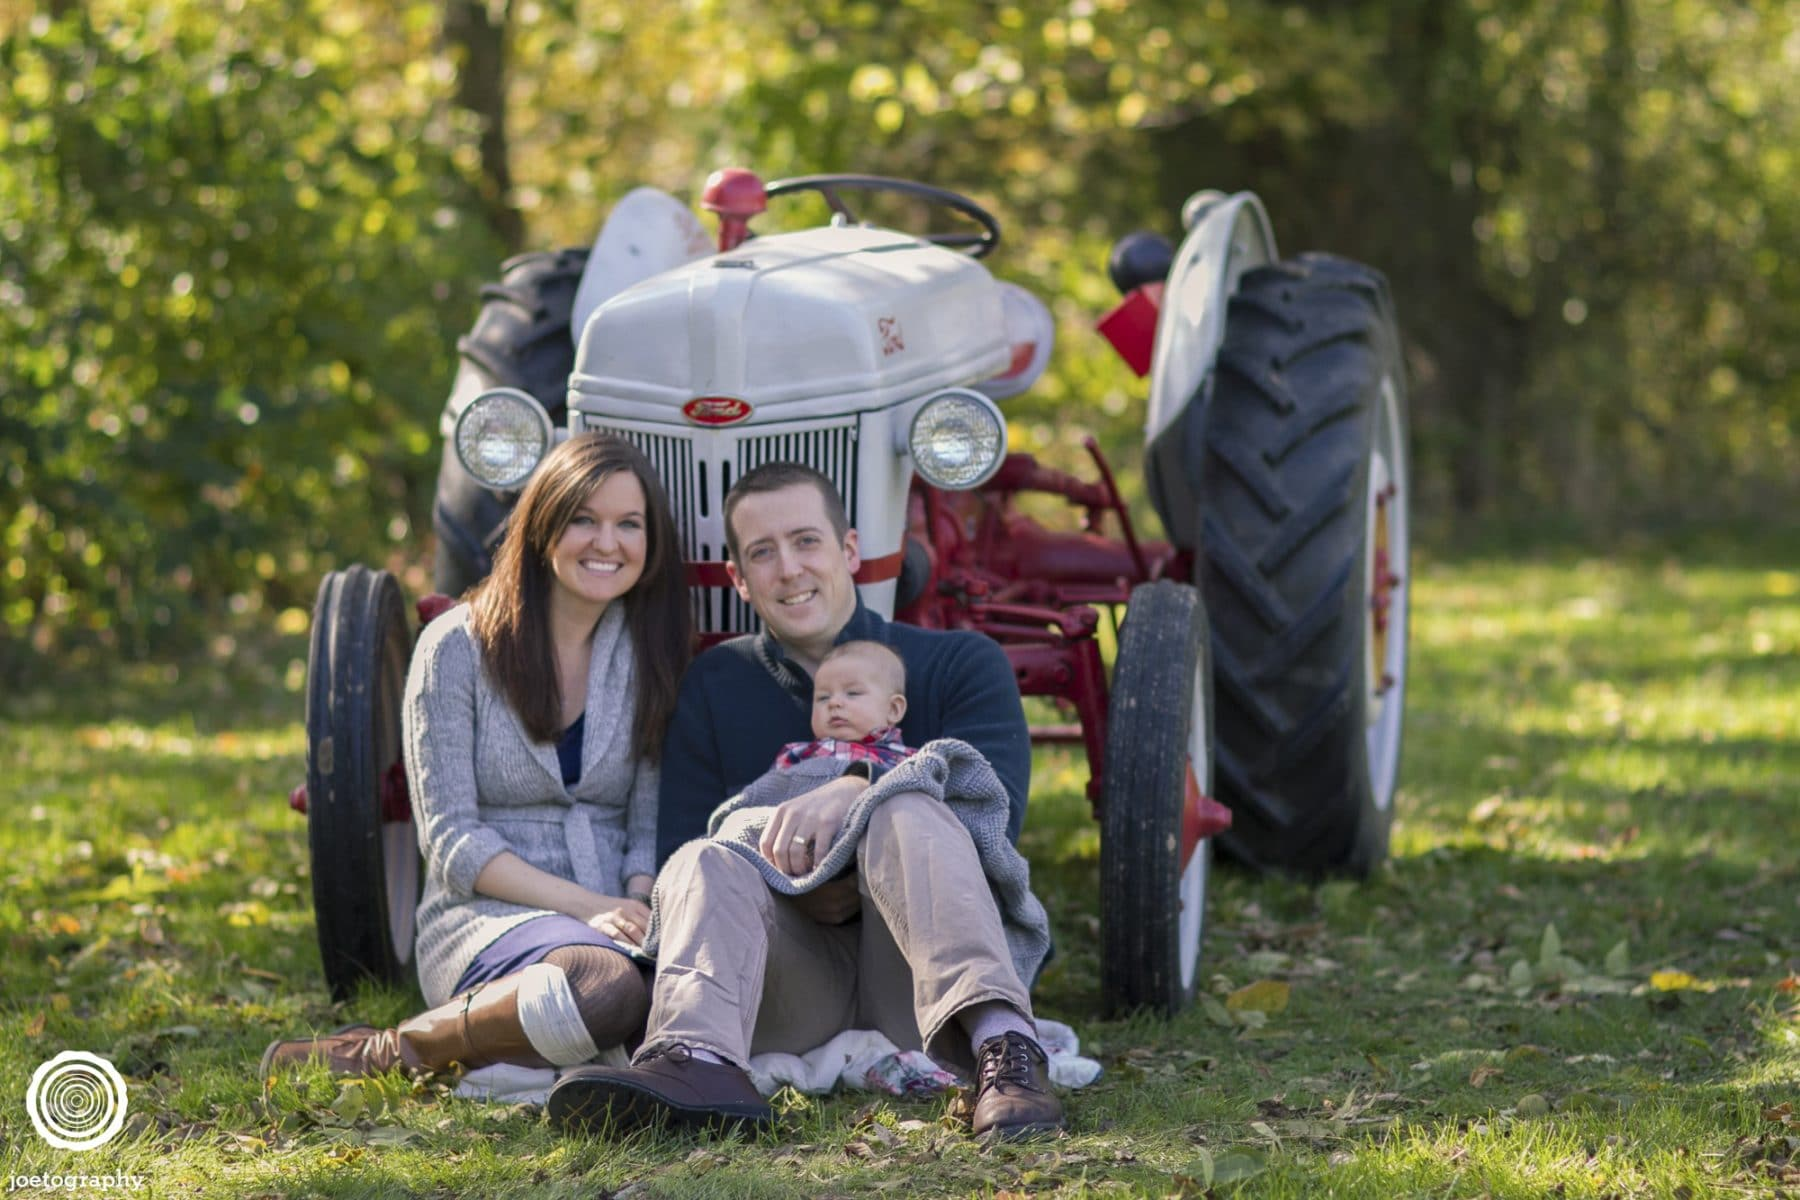 bahler-family-pictures-westfield-indiana-2